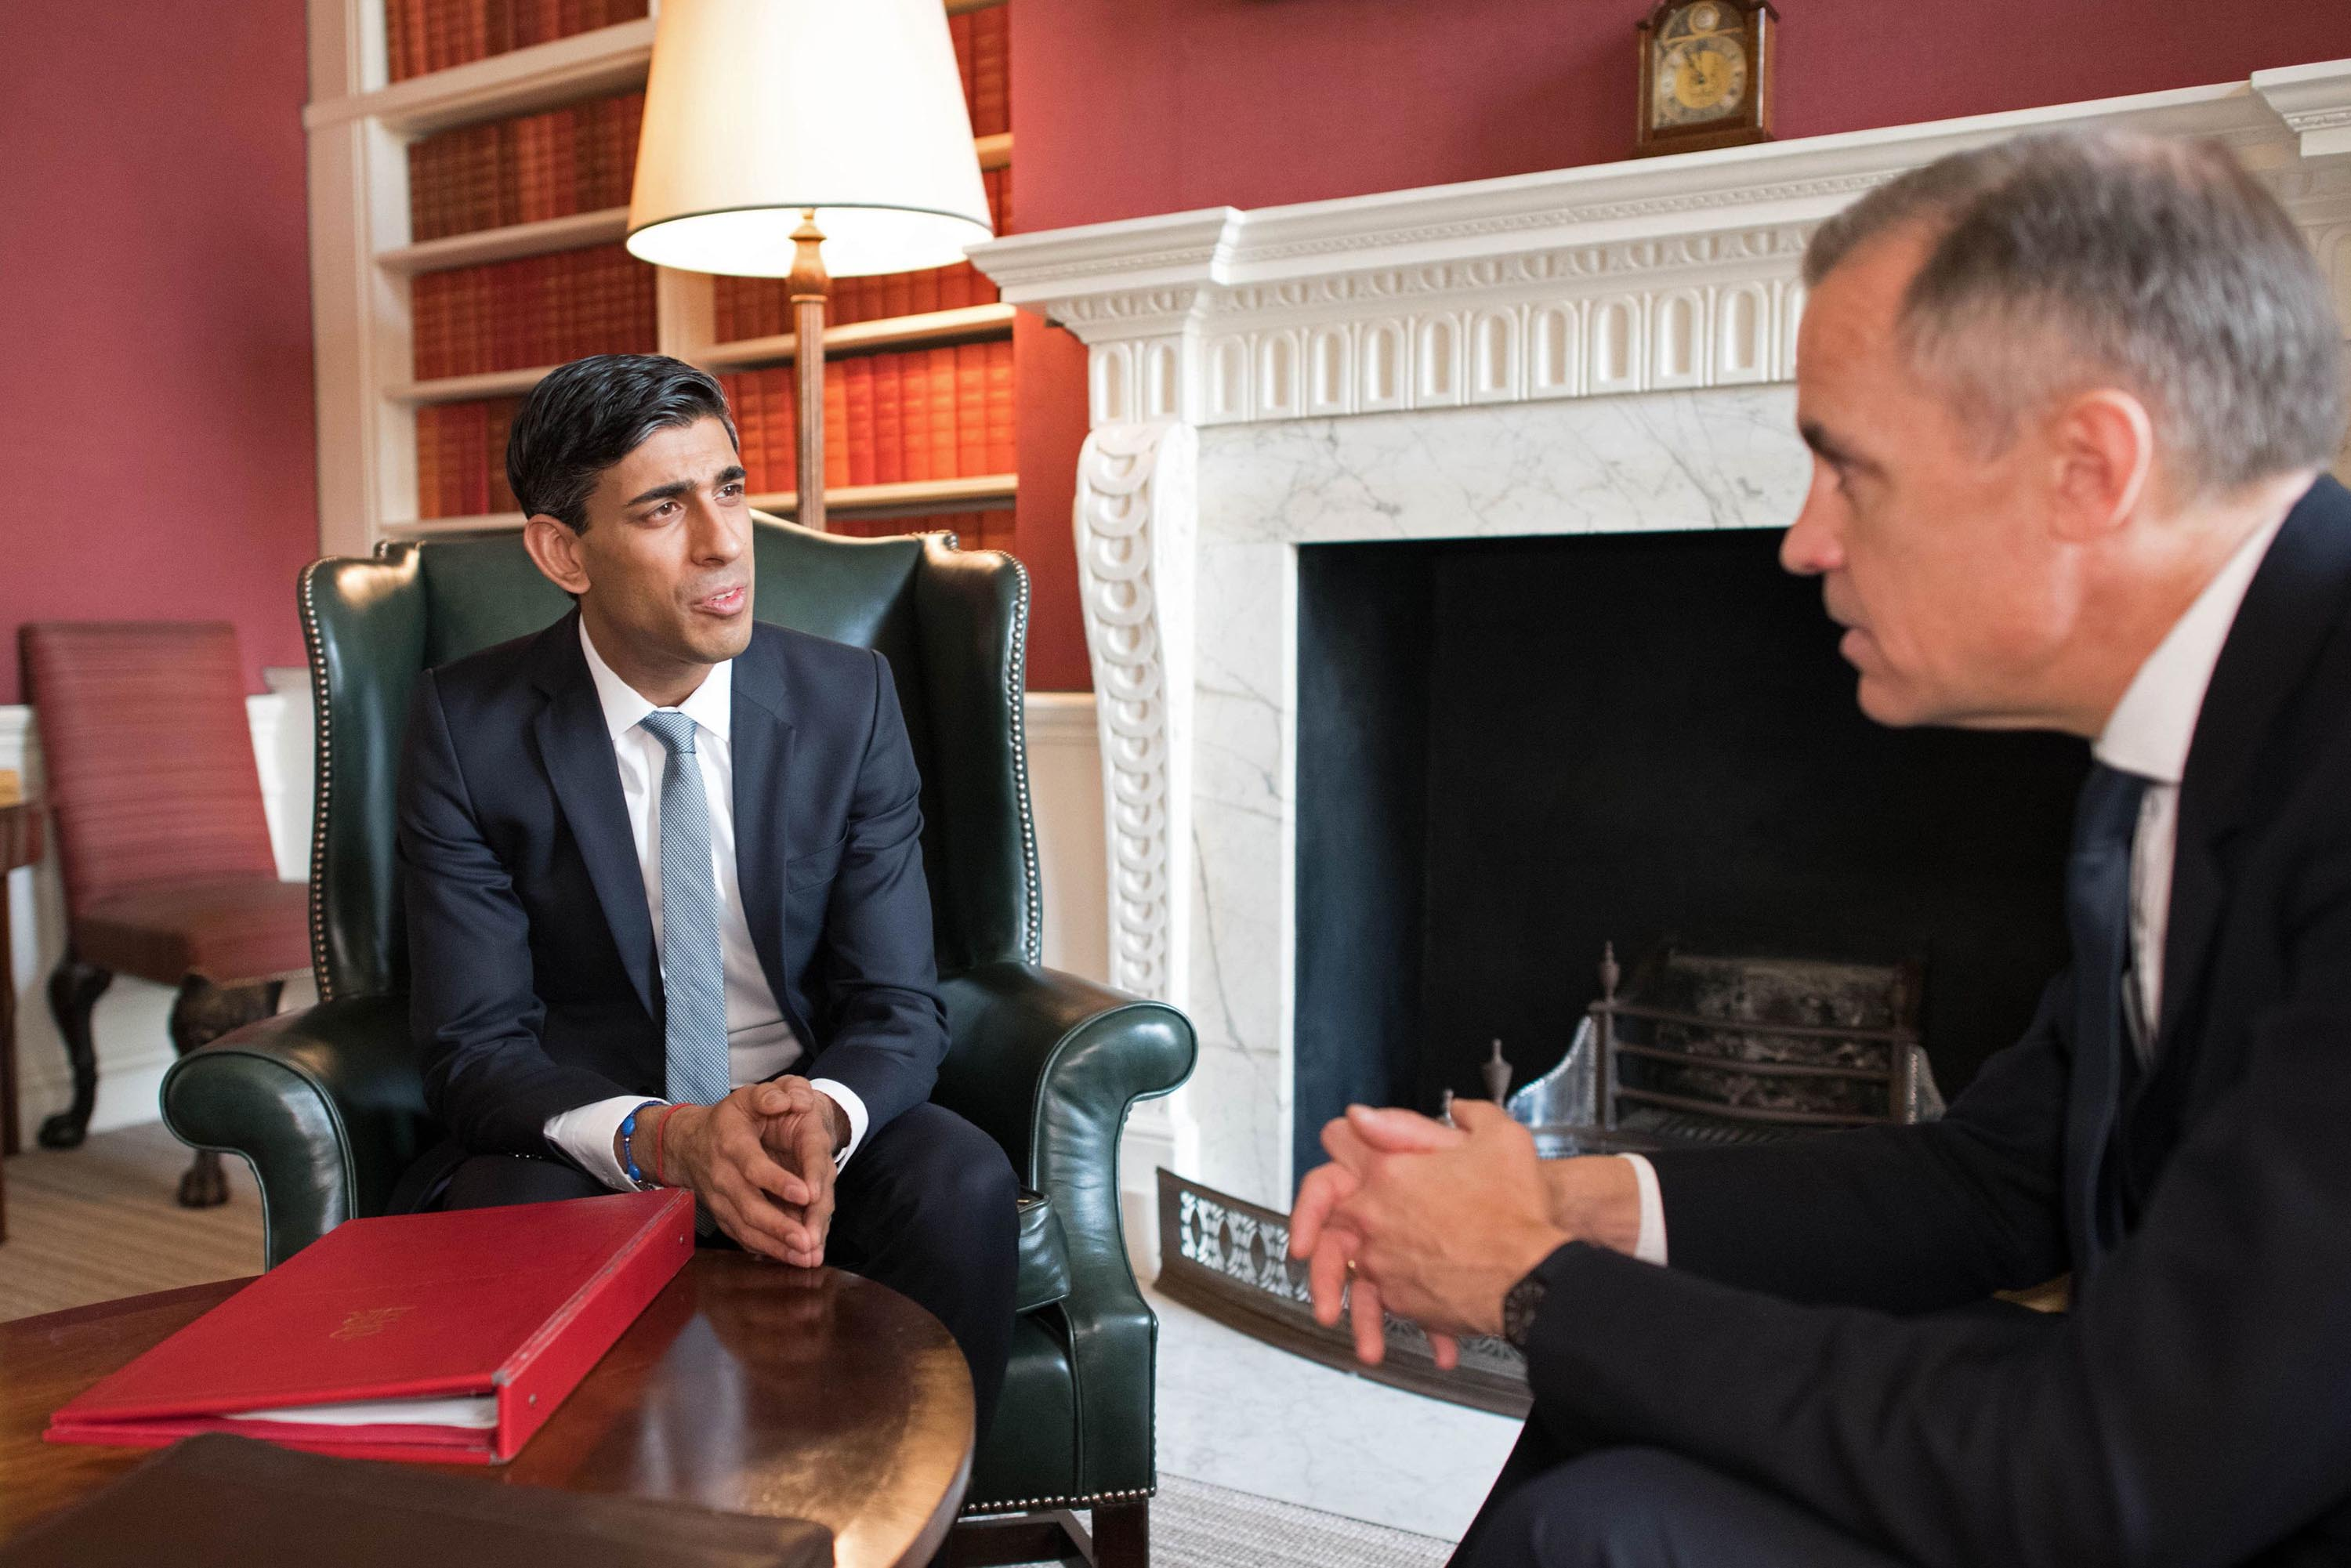 Britain's Chancellor of the Exchequer Rishi Sunak, left, speaks with Mark Carney, Governor of the Bank of England in London, England, on March 11.